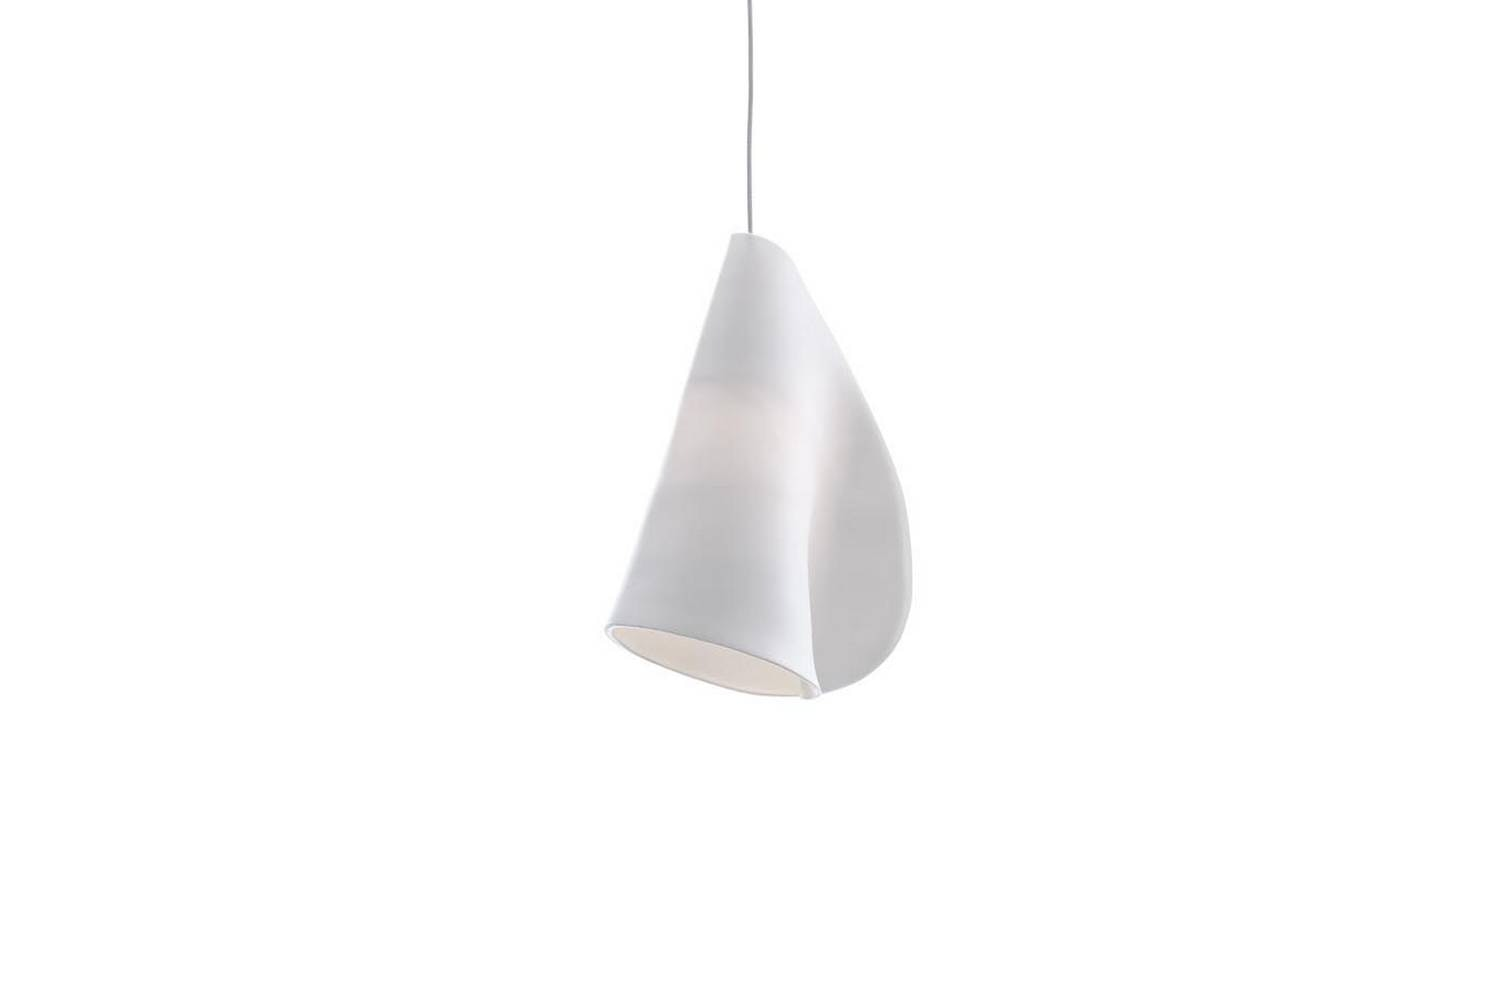 21.1 Suspension Lamp by Omer Arbel for Bocci